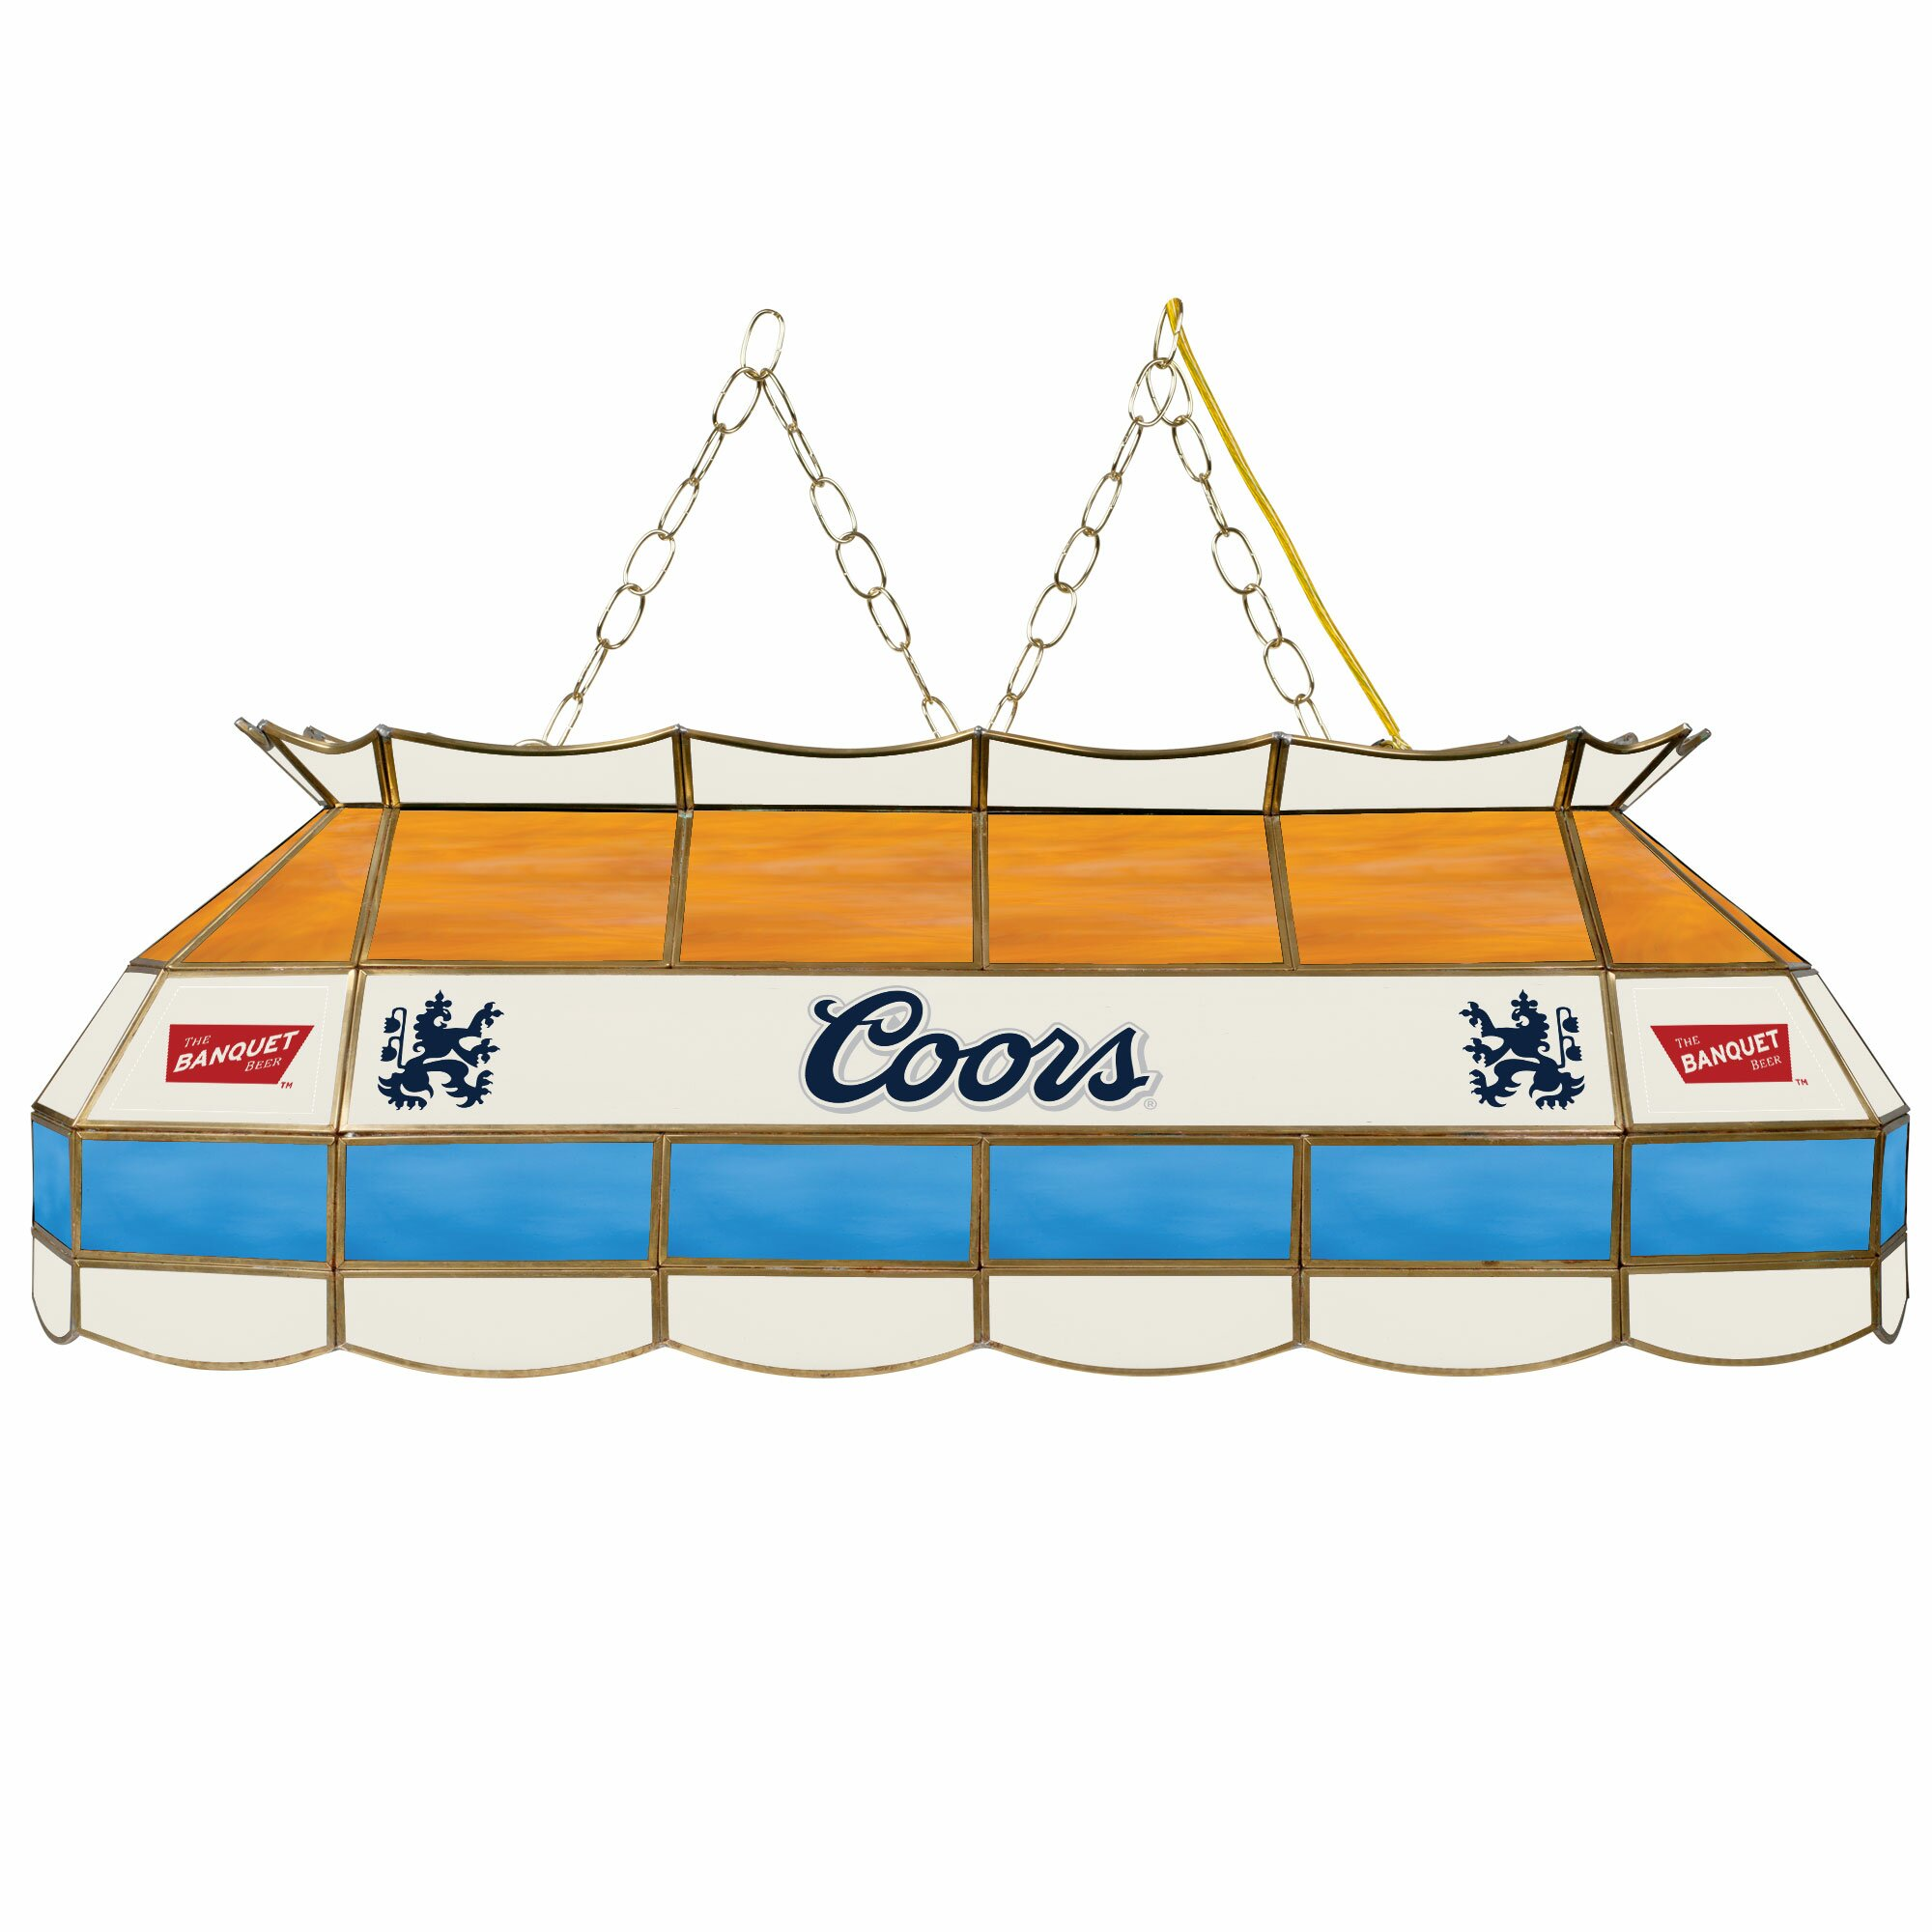 Coors Light Stained Glass Pool Table Light: Coors Banquet 3 Light Pool Table Light